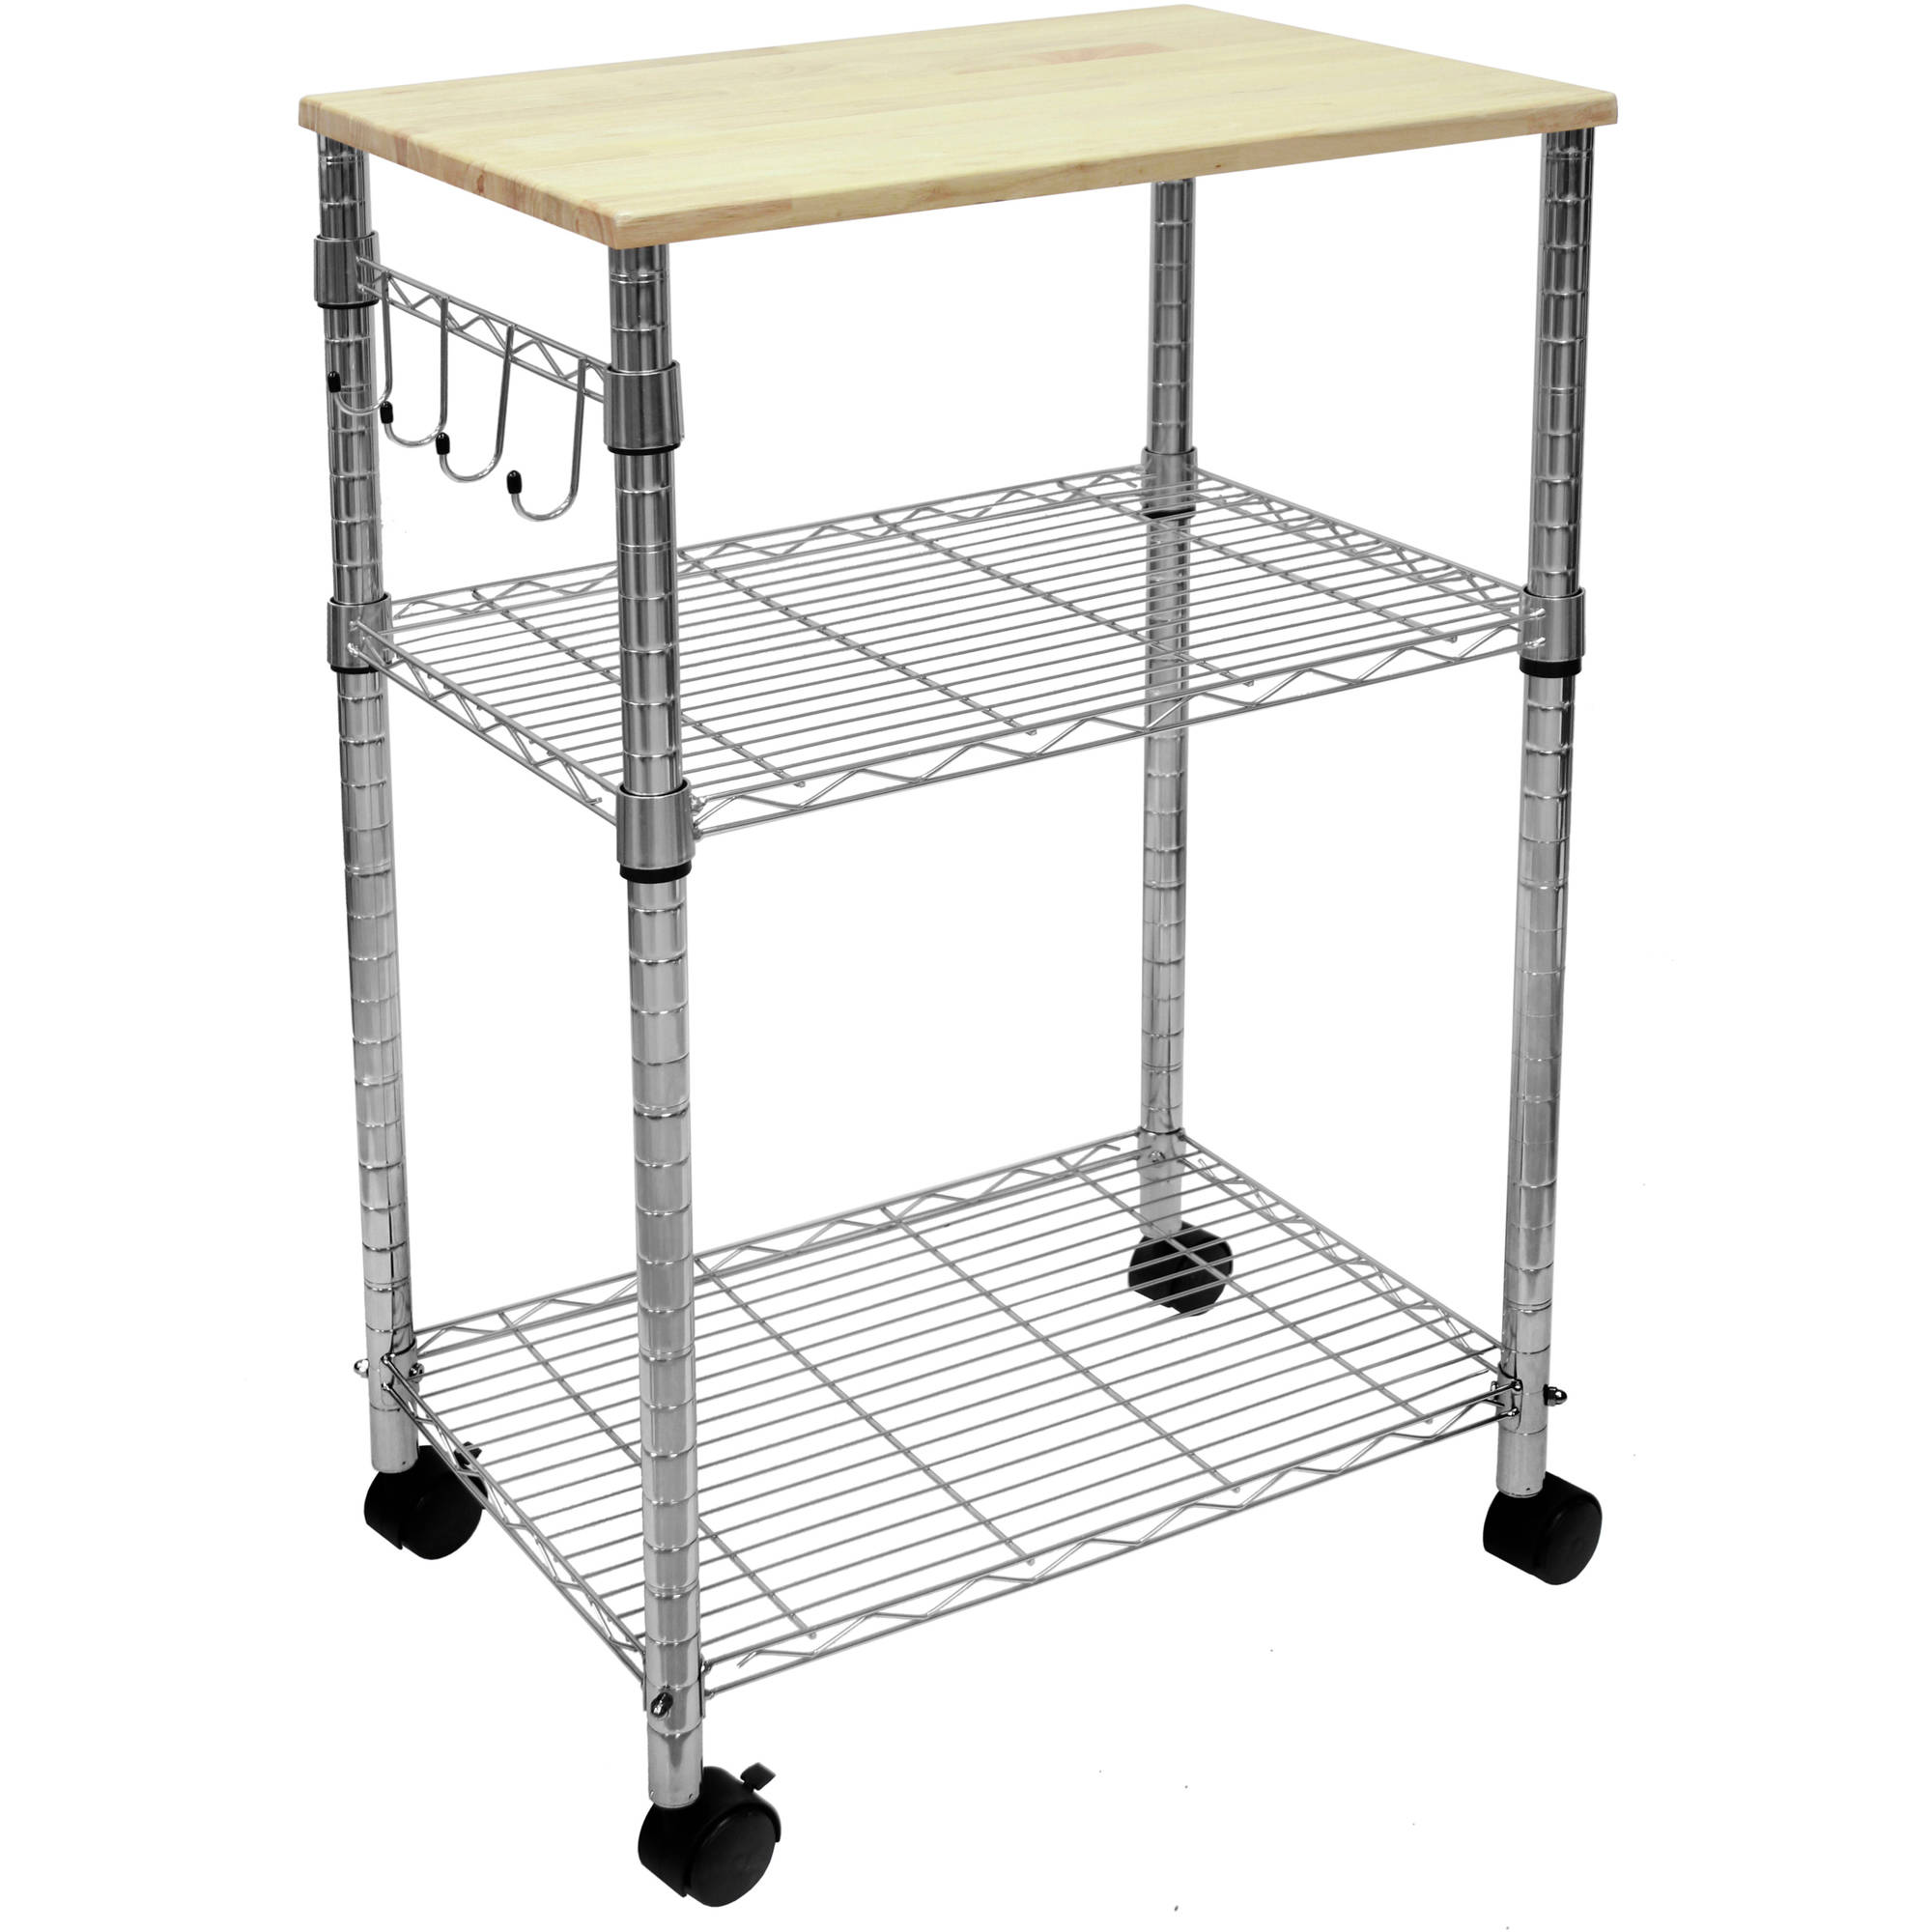 Tier Portable Rolling Kitchen Island Cart Cutting Board Table Home - Kitchen island cart walmart